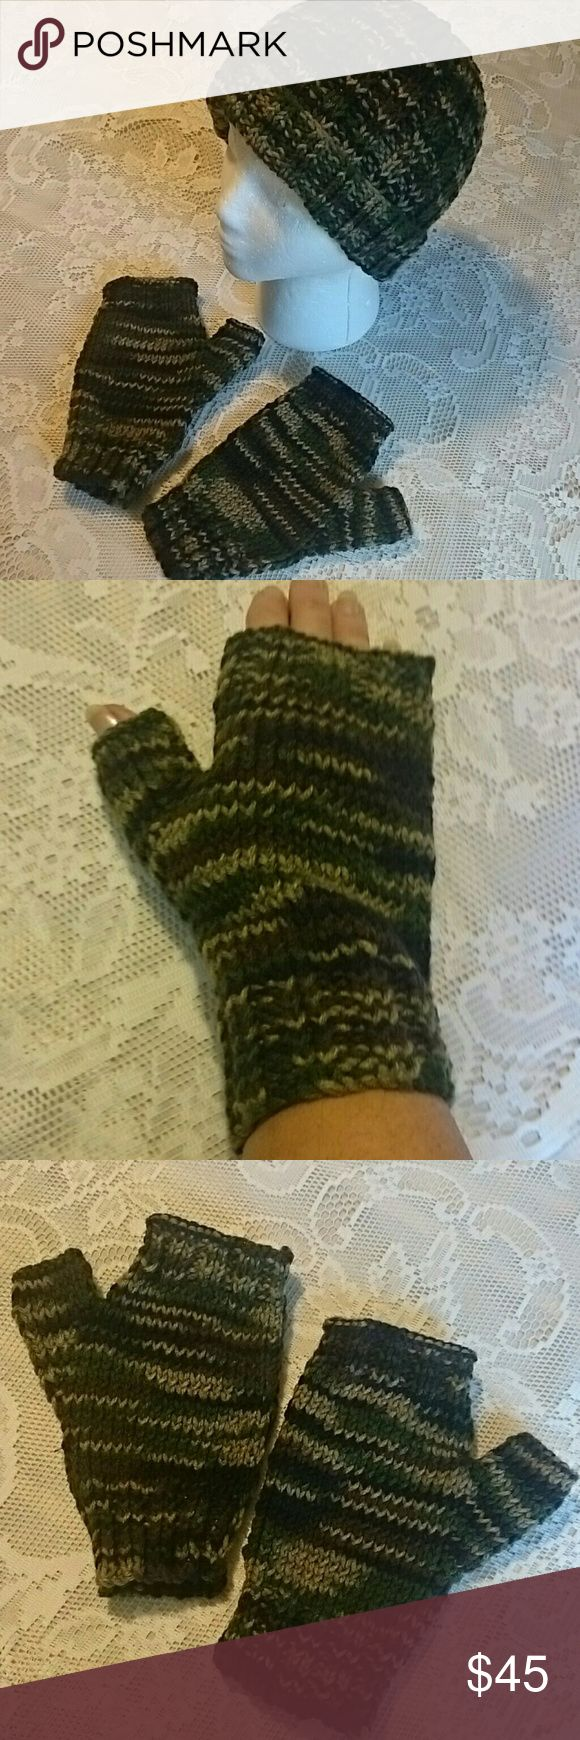 Fingerless gloves hunting - Selling This Hand Knit Camo Hat Fingerless Glove Hunting On Poshmark My Username Is